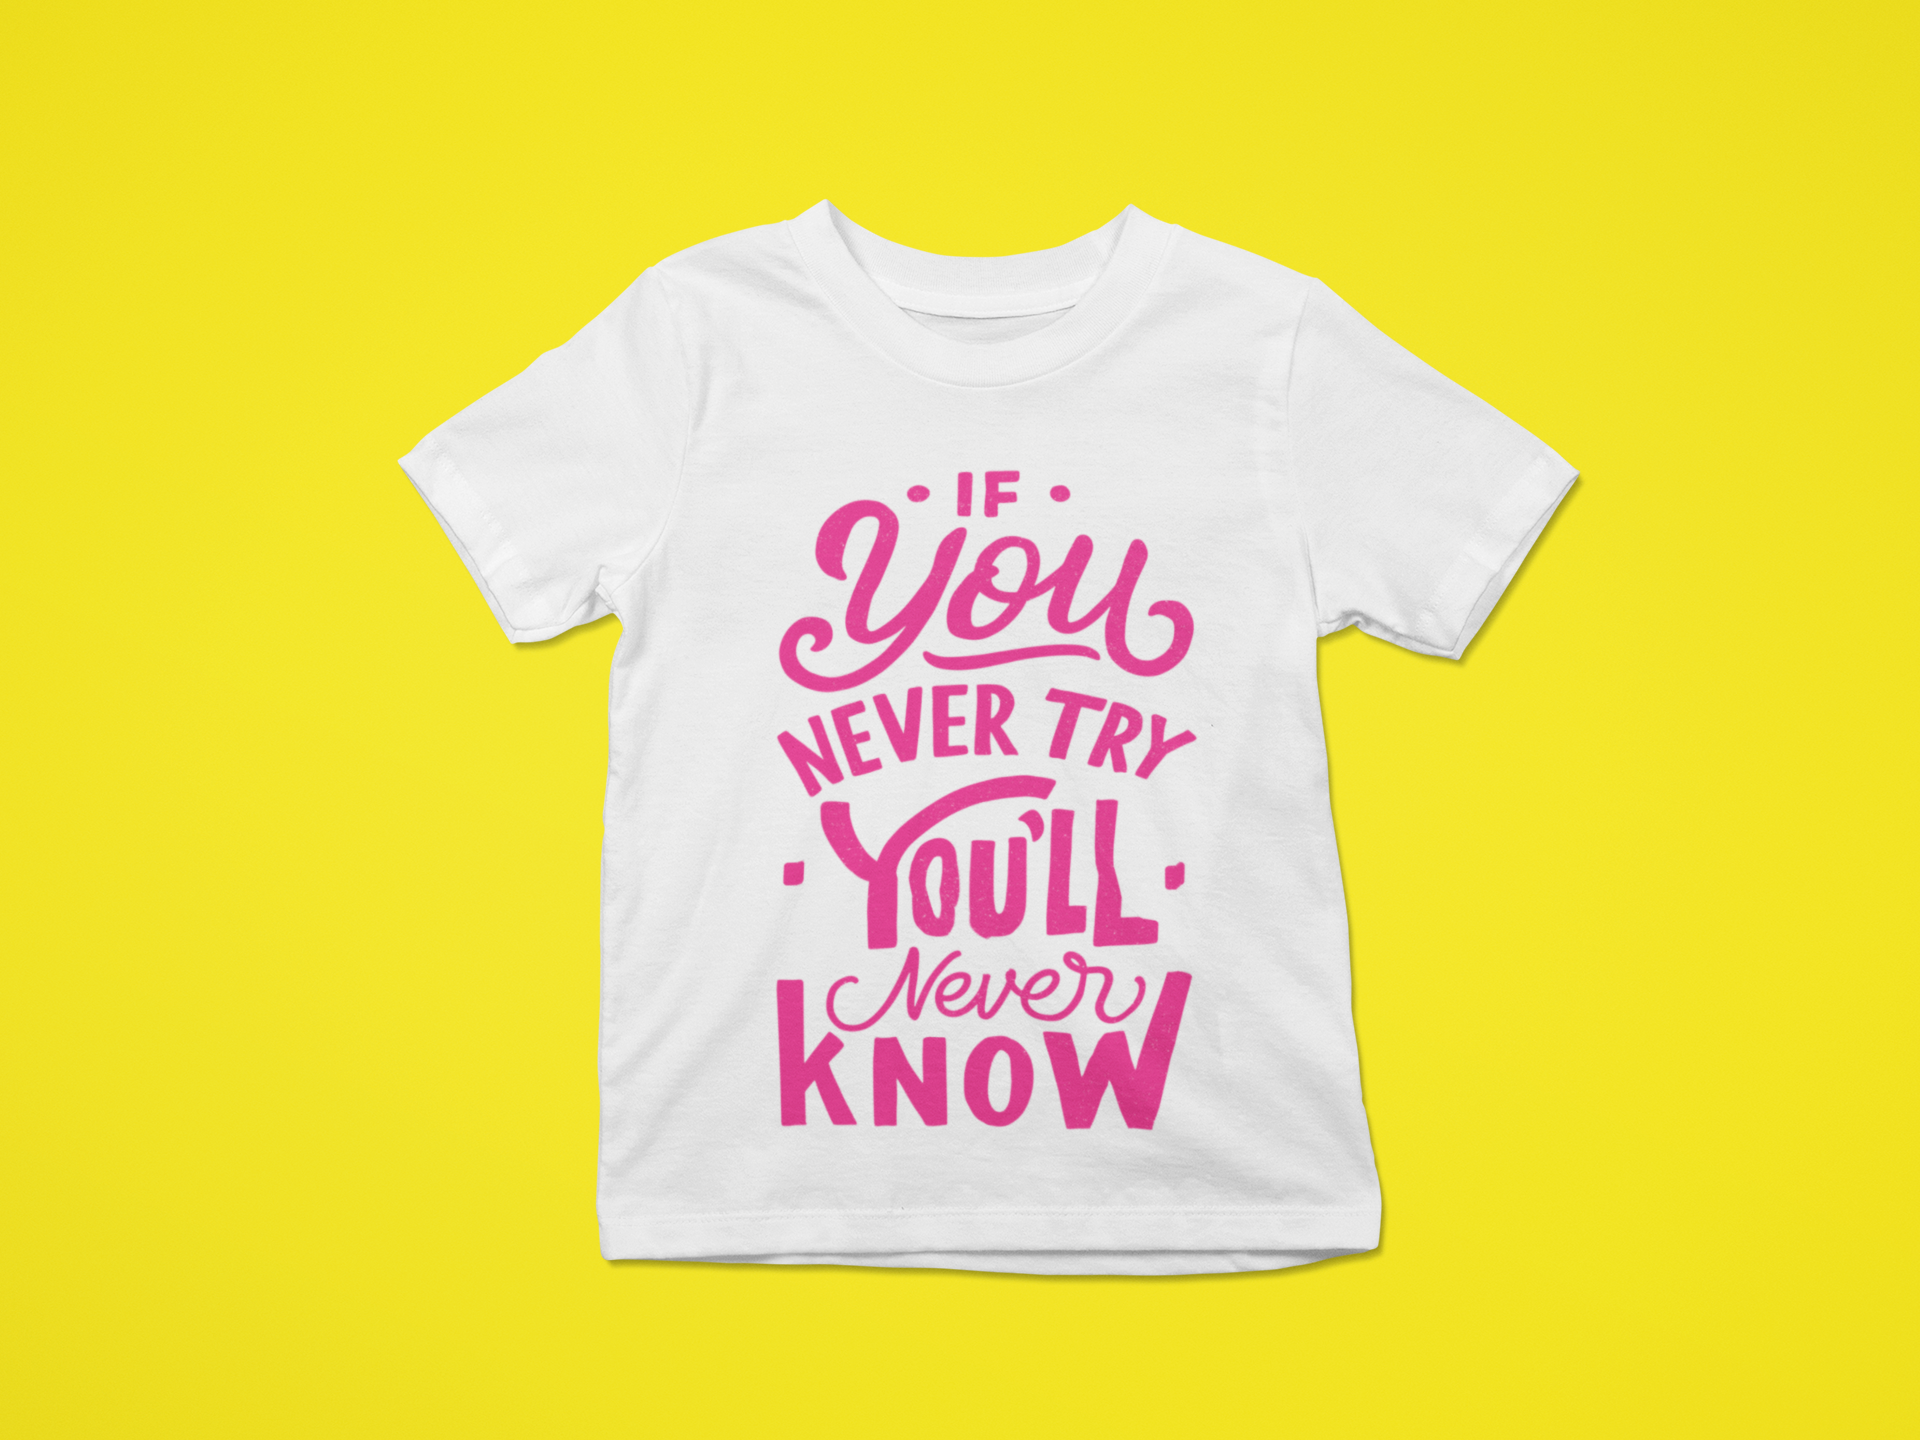 kids-t-shirt-mockup-over-a-flat-backgrou